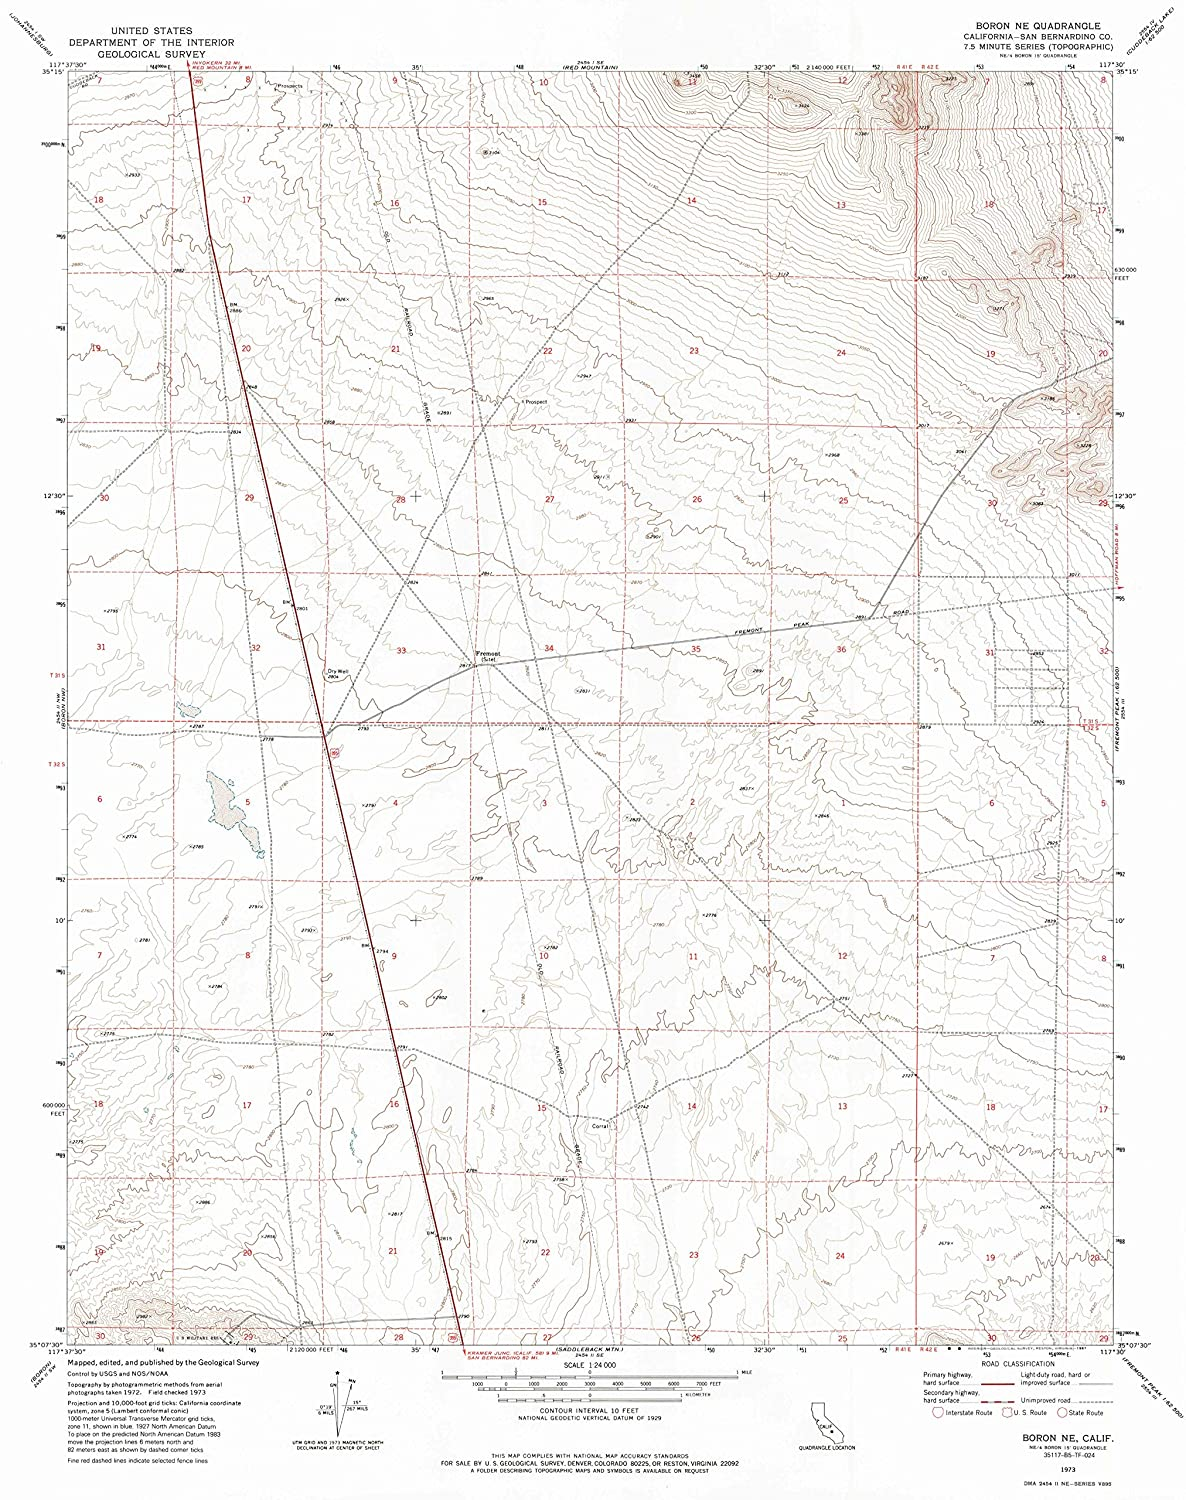 Map Print - Boron NE, California (1973), 1:24000 Scale - 24